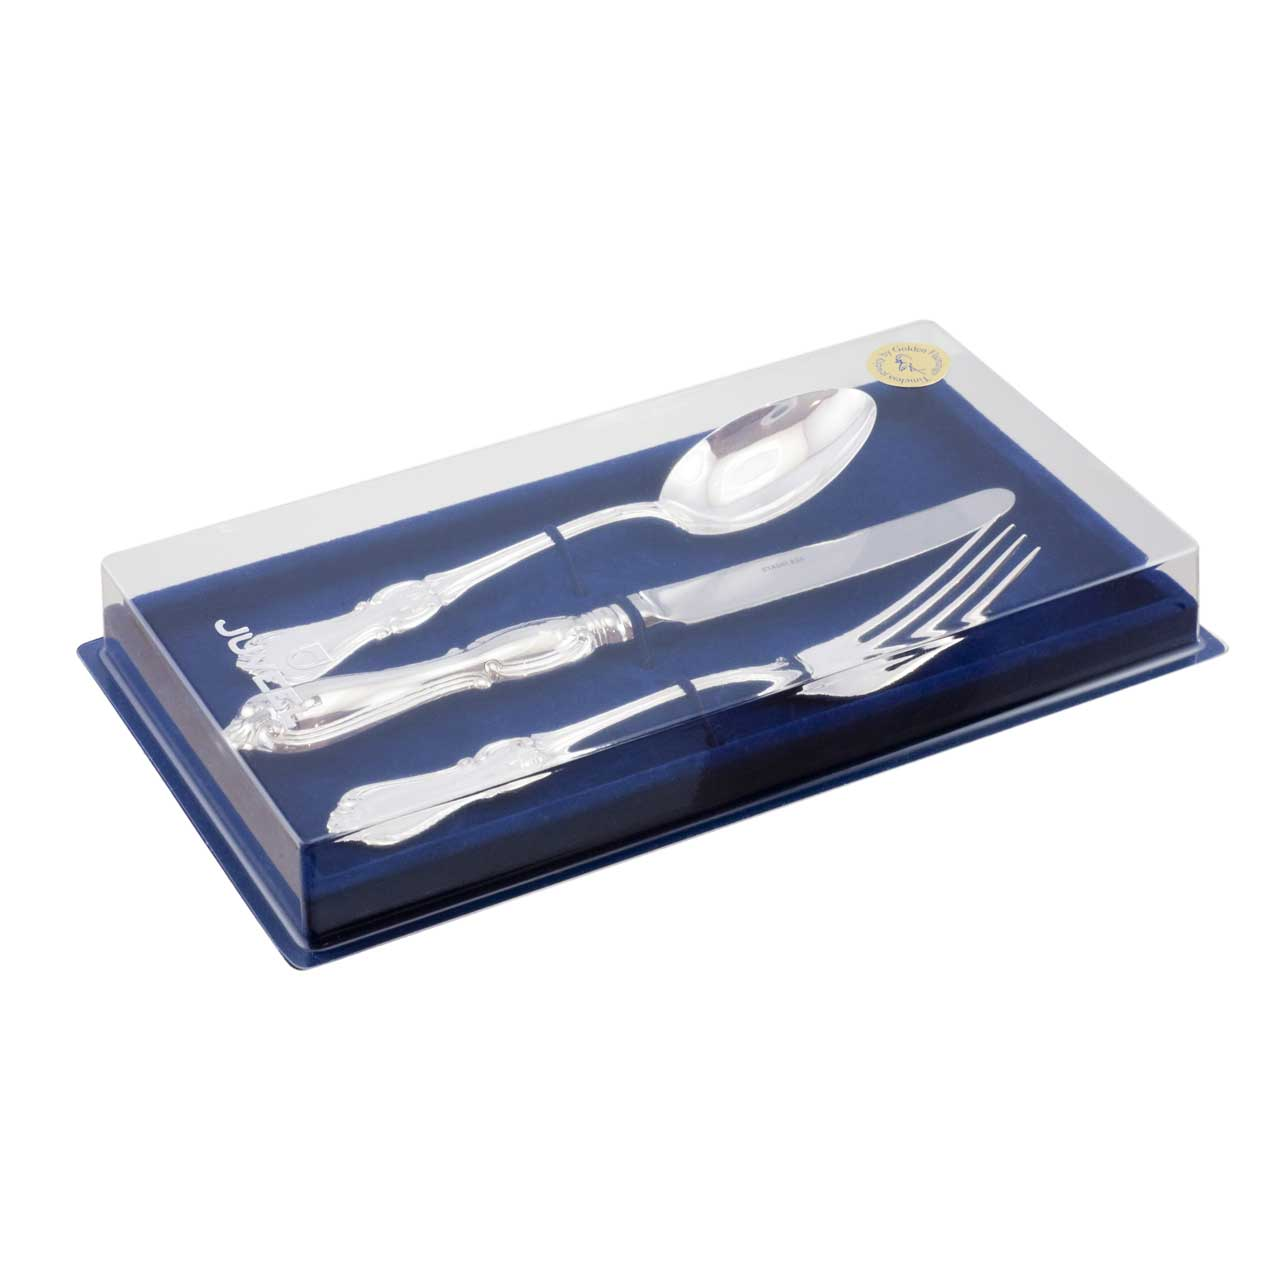 Silver cutlery dinner set 6